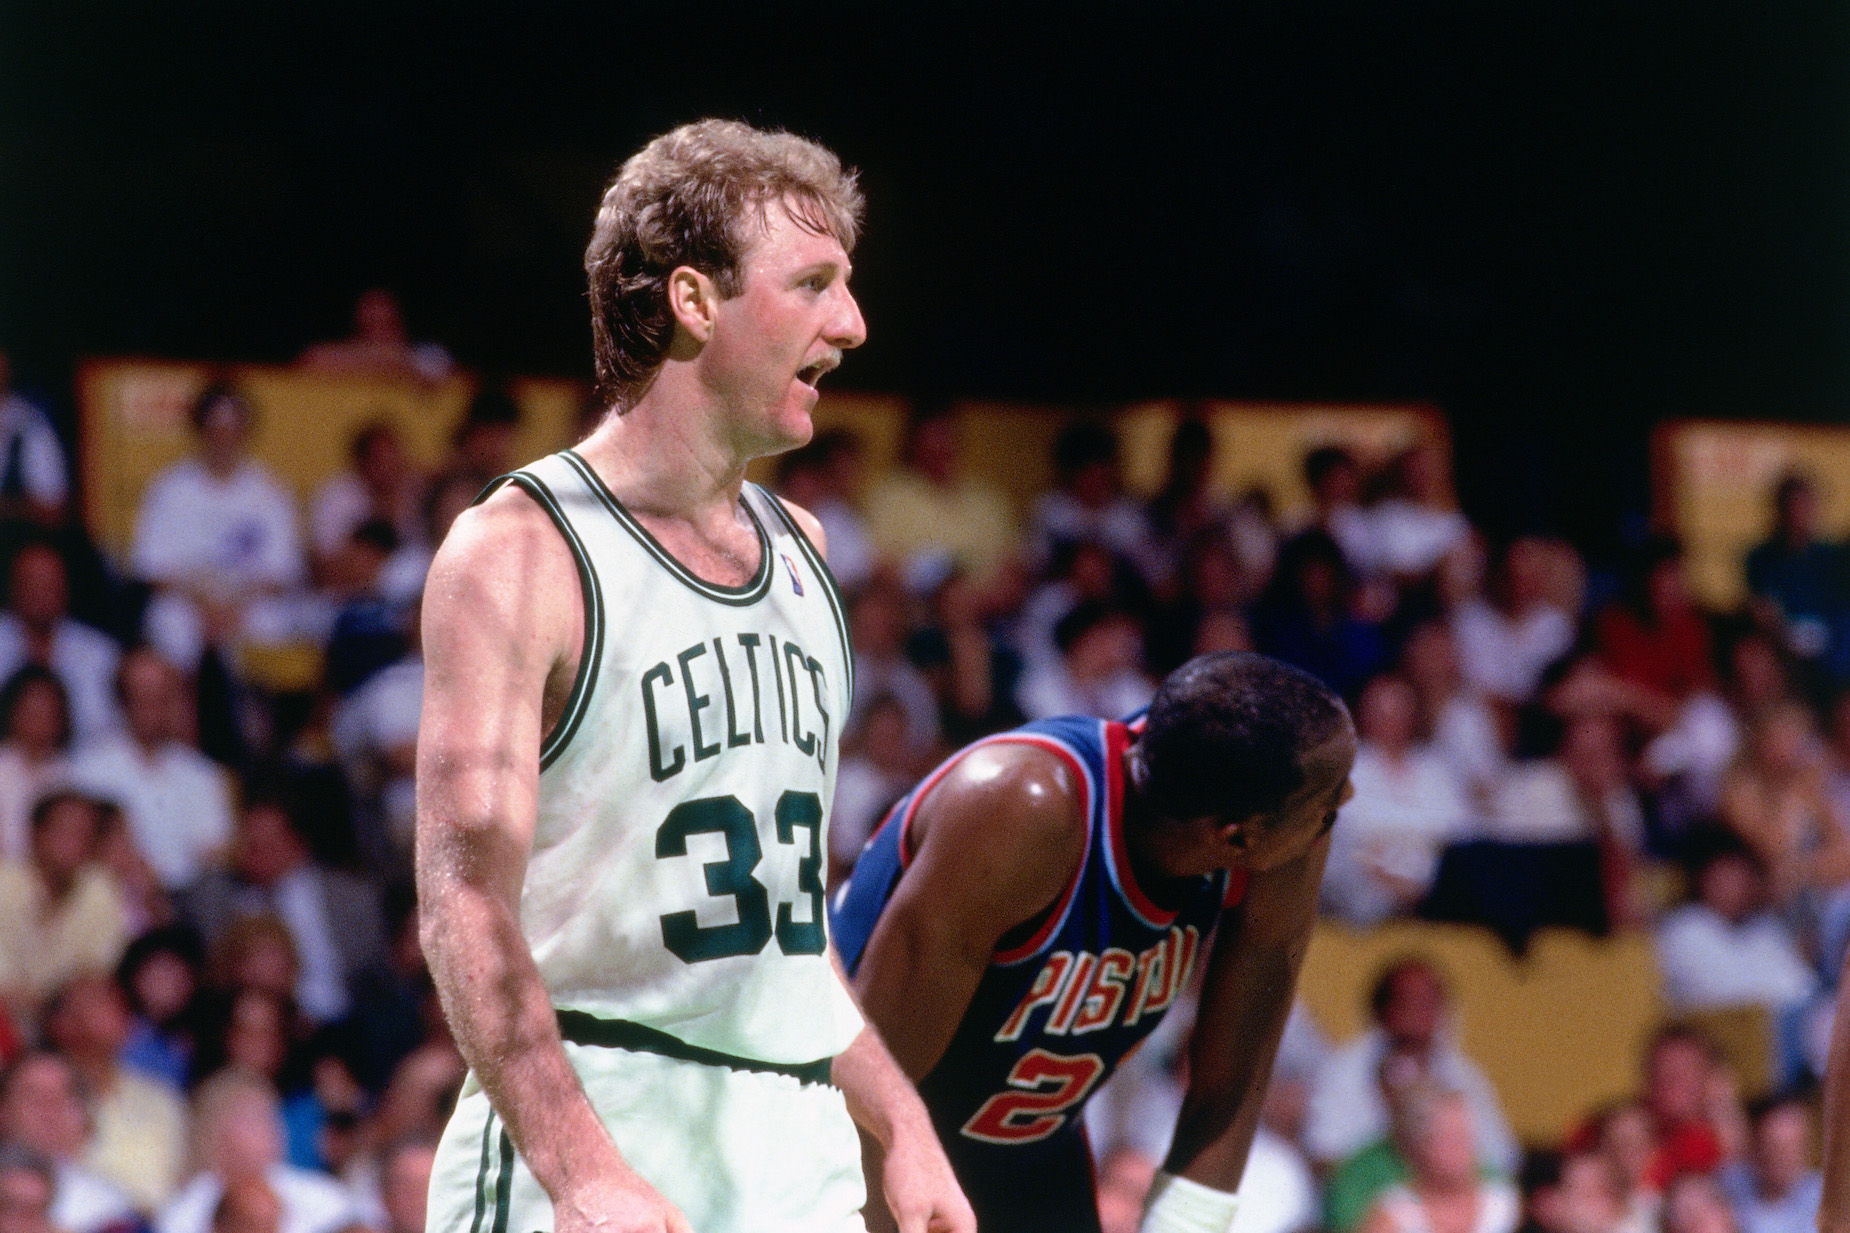 Larry Bird played in the rough and tumble 1980s, but appreciates the modern game's rulebook.